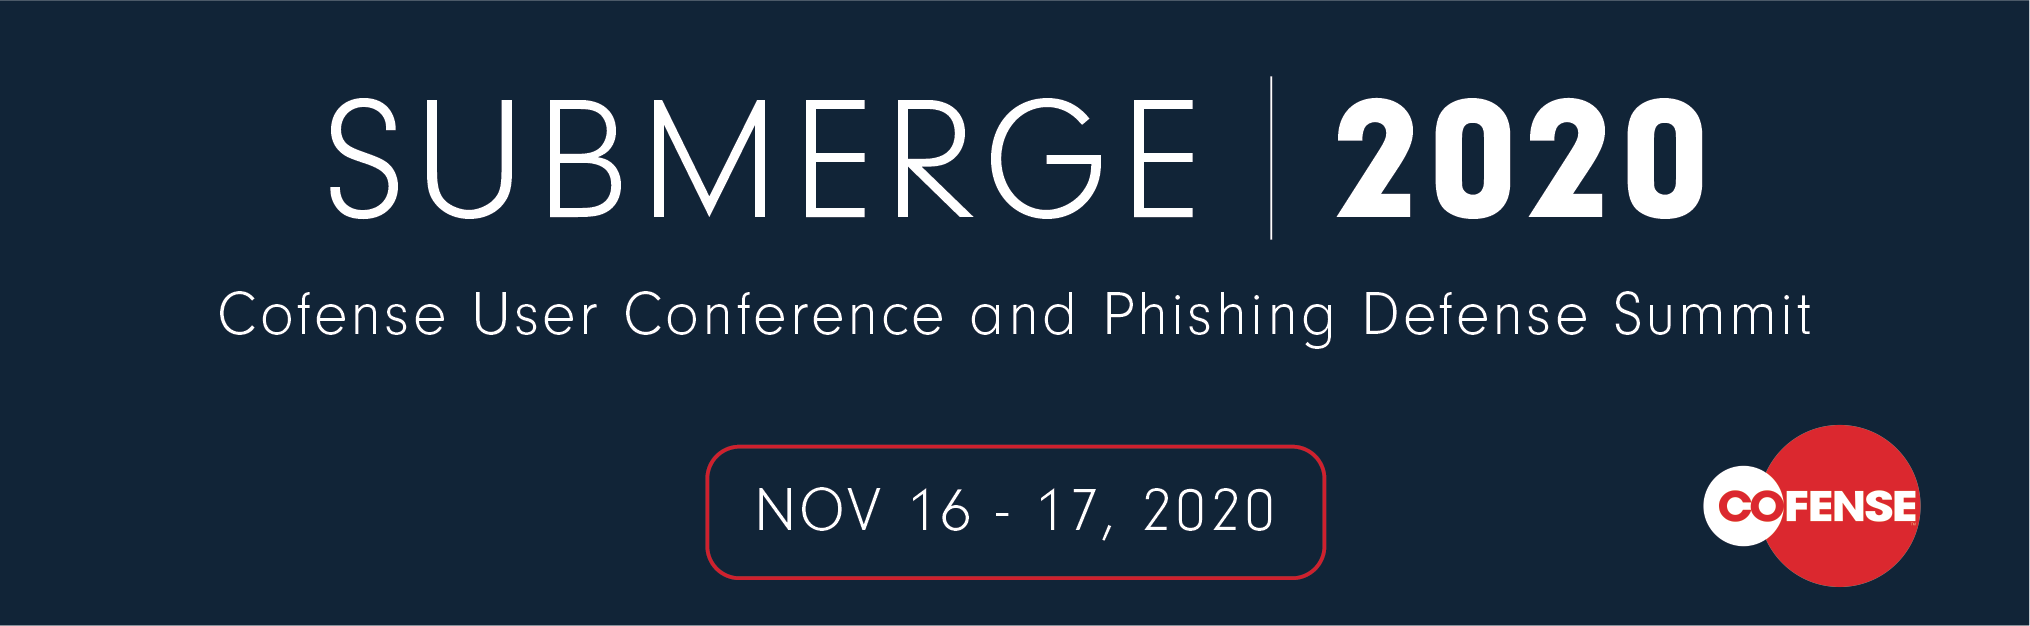 Submerge 2020: Phishing Defense Summit and User Conference